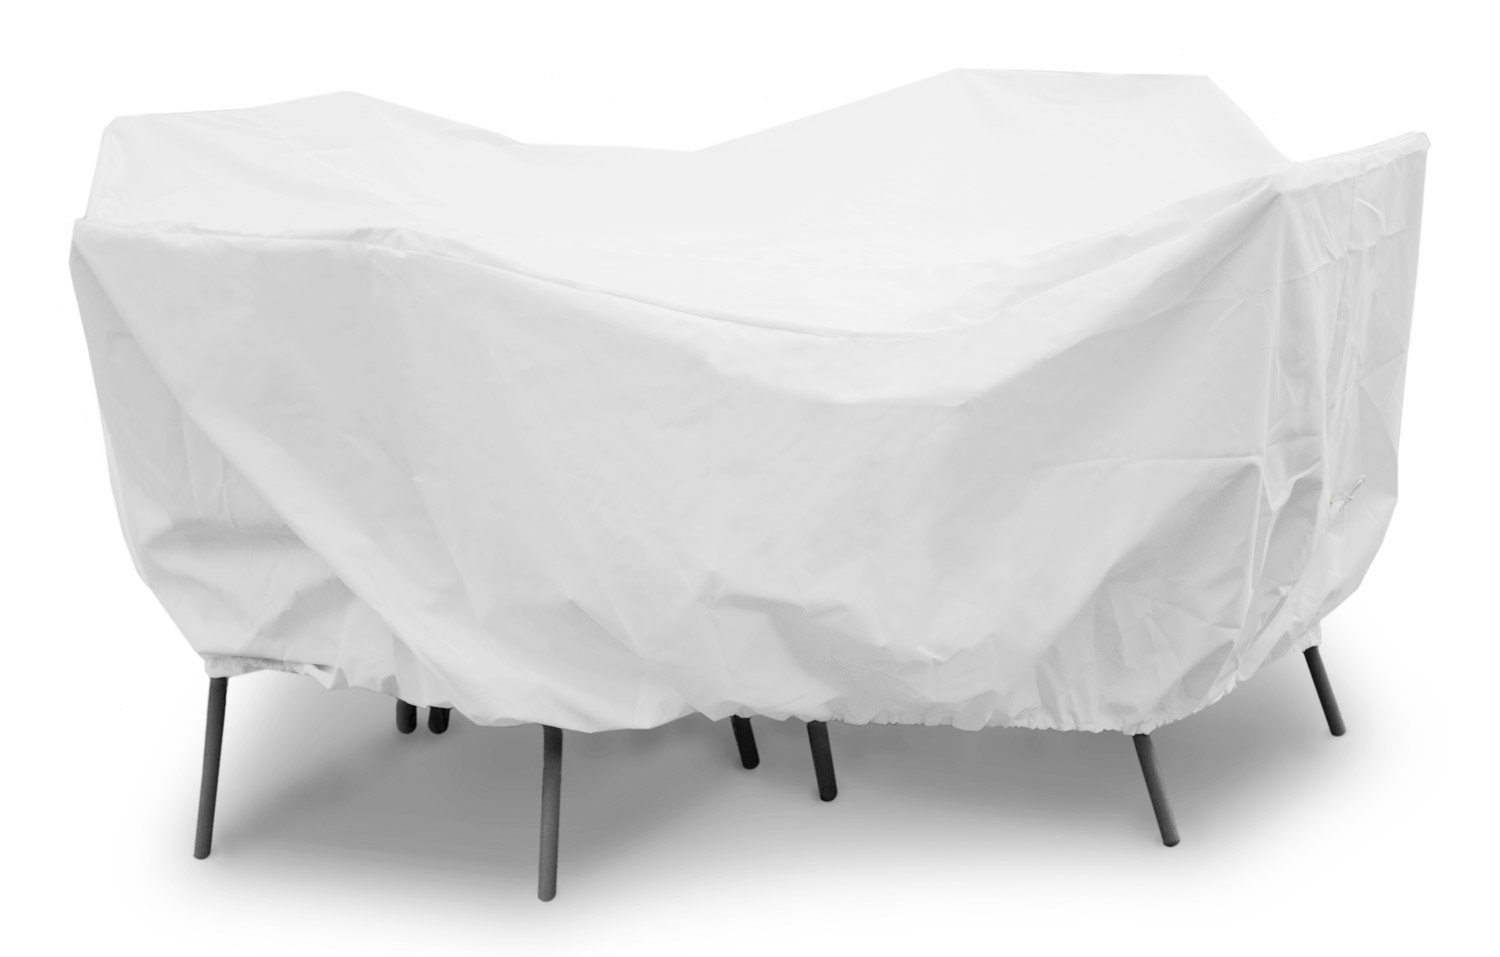 KoverRoos Weathermax 11262 80-Inch Round Table High Back Dining Set Cover, 114-Inch Diameter by 36-Inch Height, White by KOVERROOS